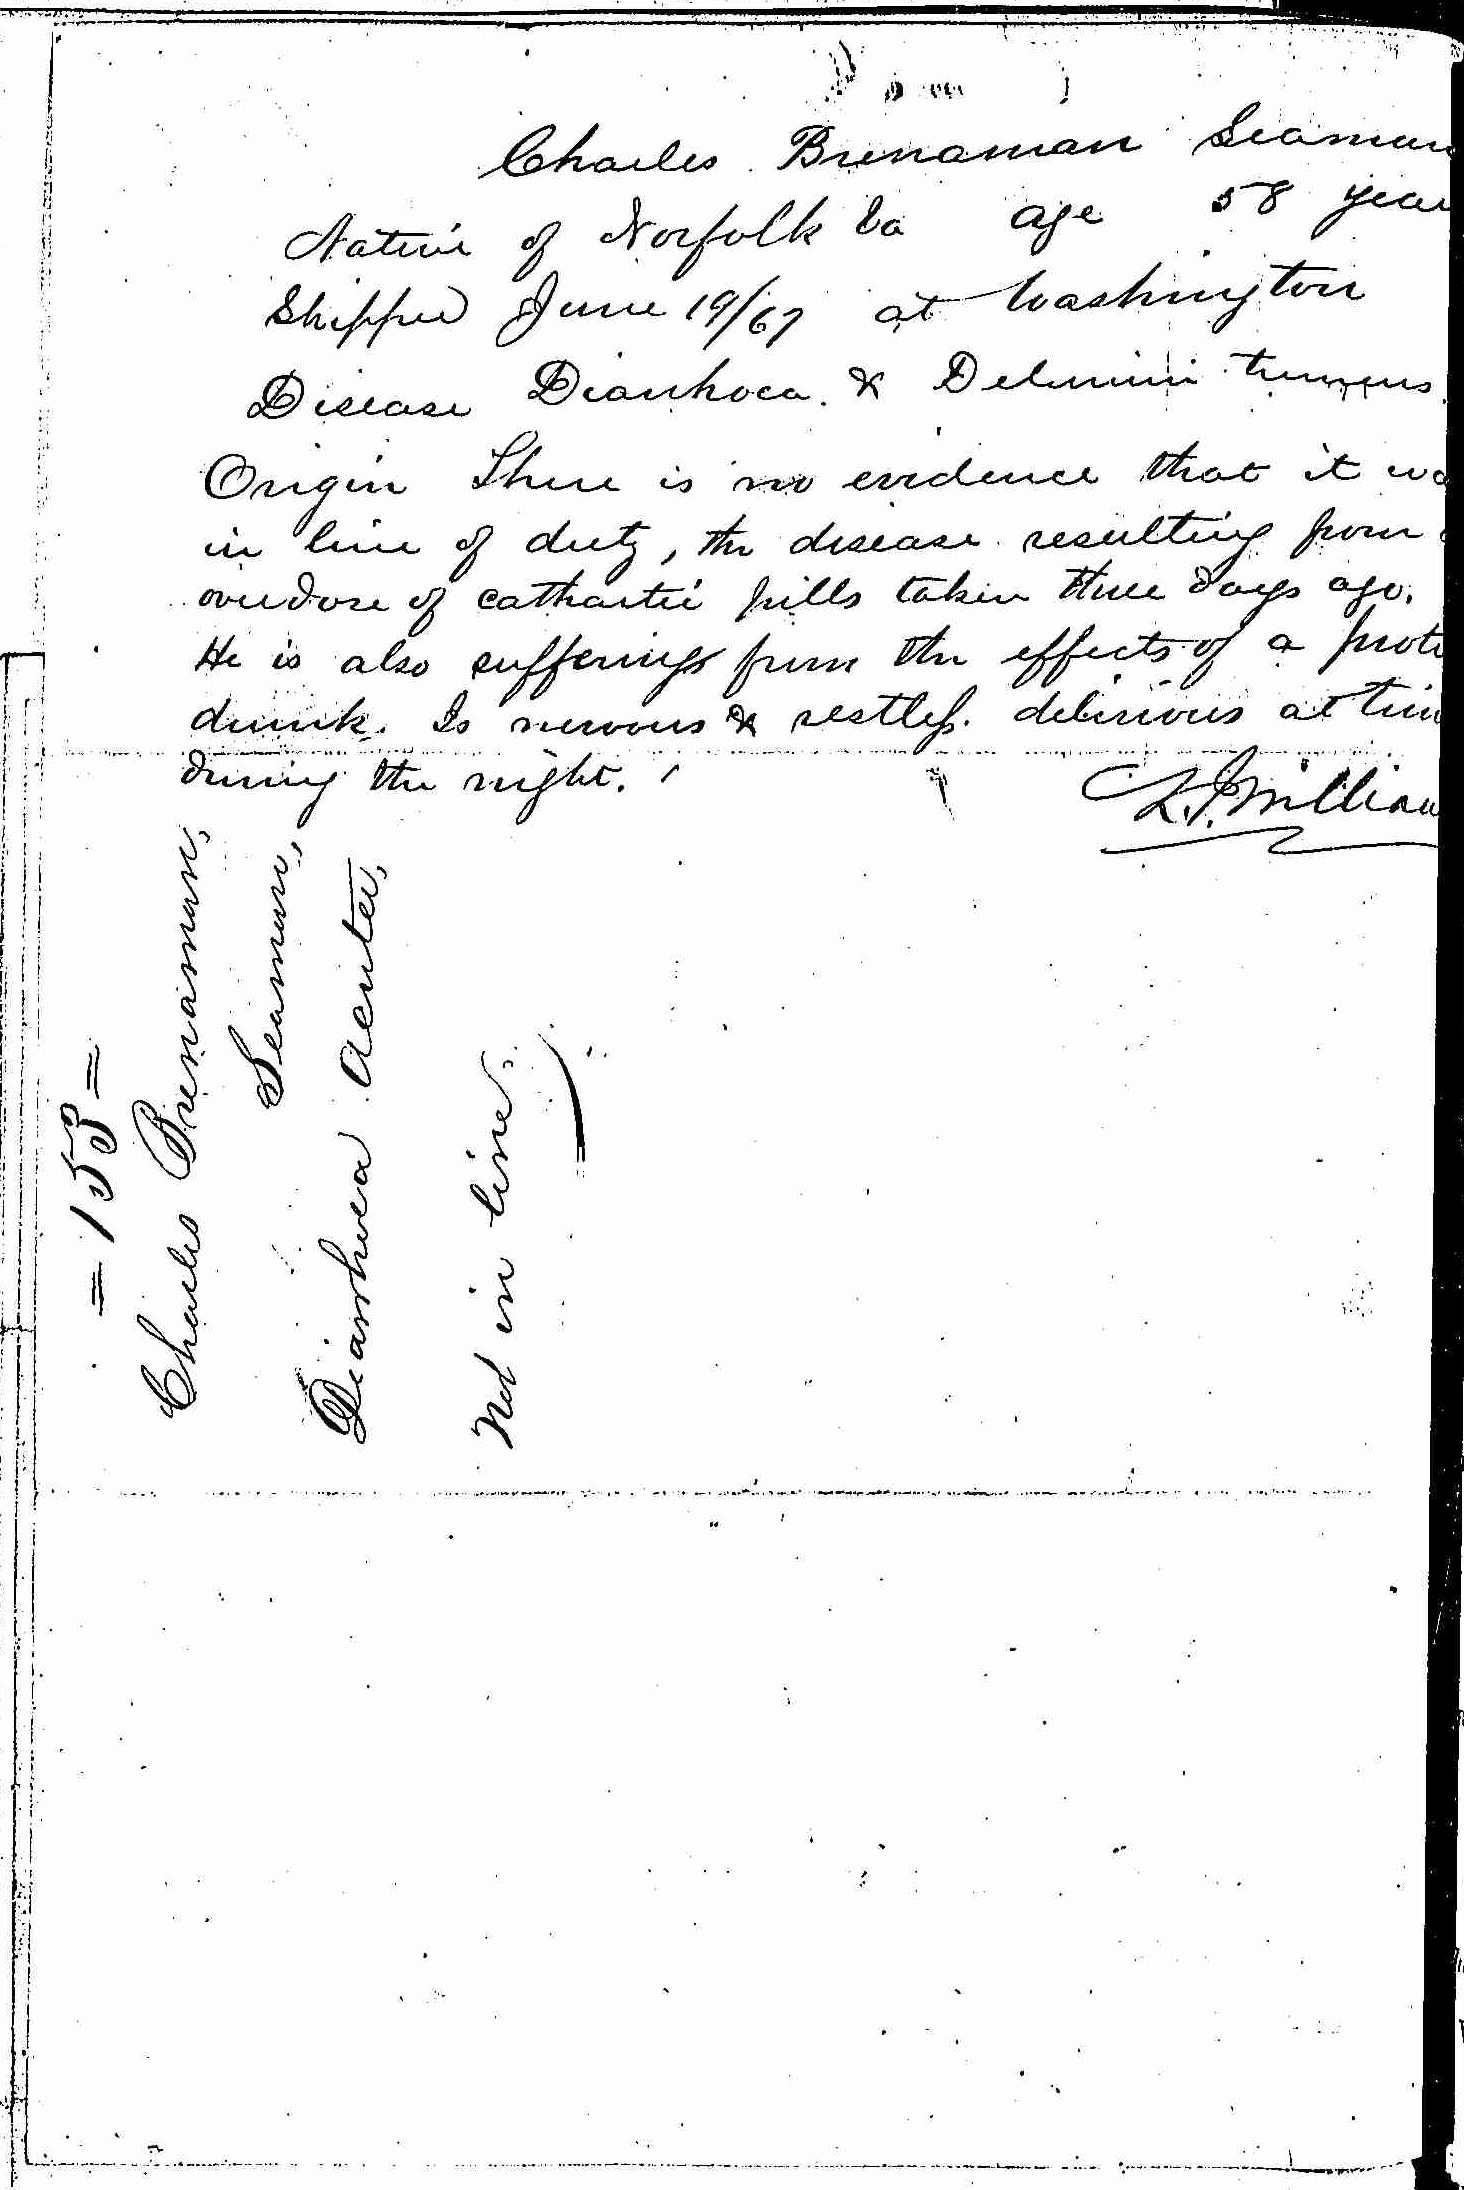 Entry for Charles Brenaman (page 2 of 2) in the log Hospital Tickets and Case Papers - Naval Hospital - Washington, D.C. - 1866-68